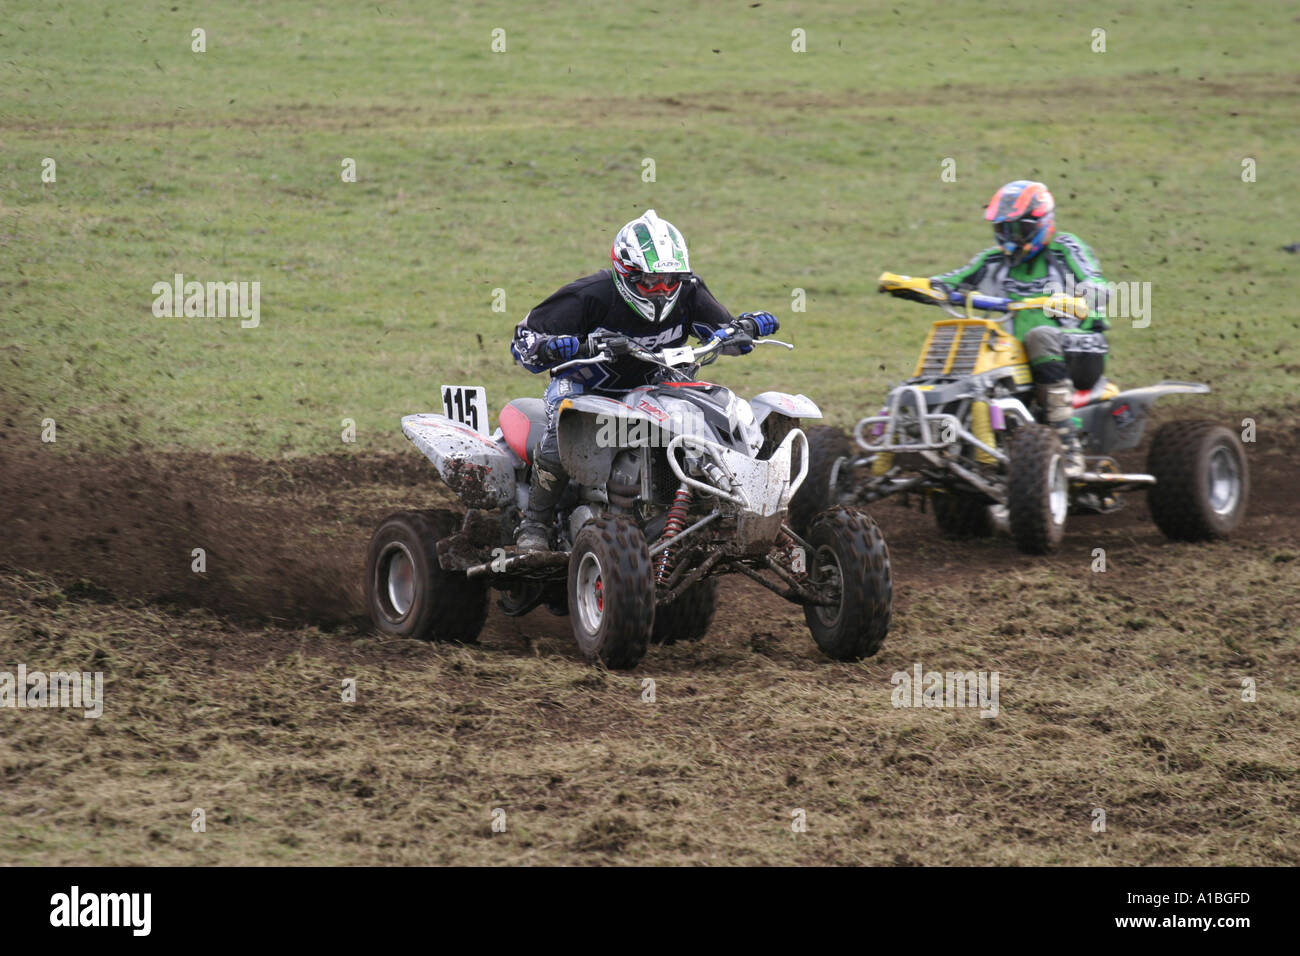 two quad Racers in action mud spraying from quad bike outside Ballymena County Antrim Northern Ireland - Stock Image